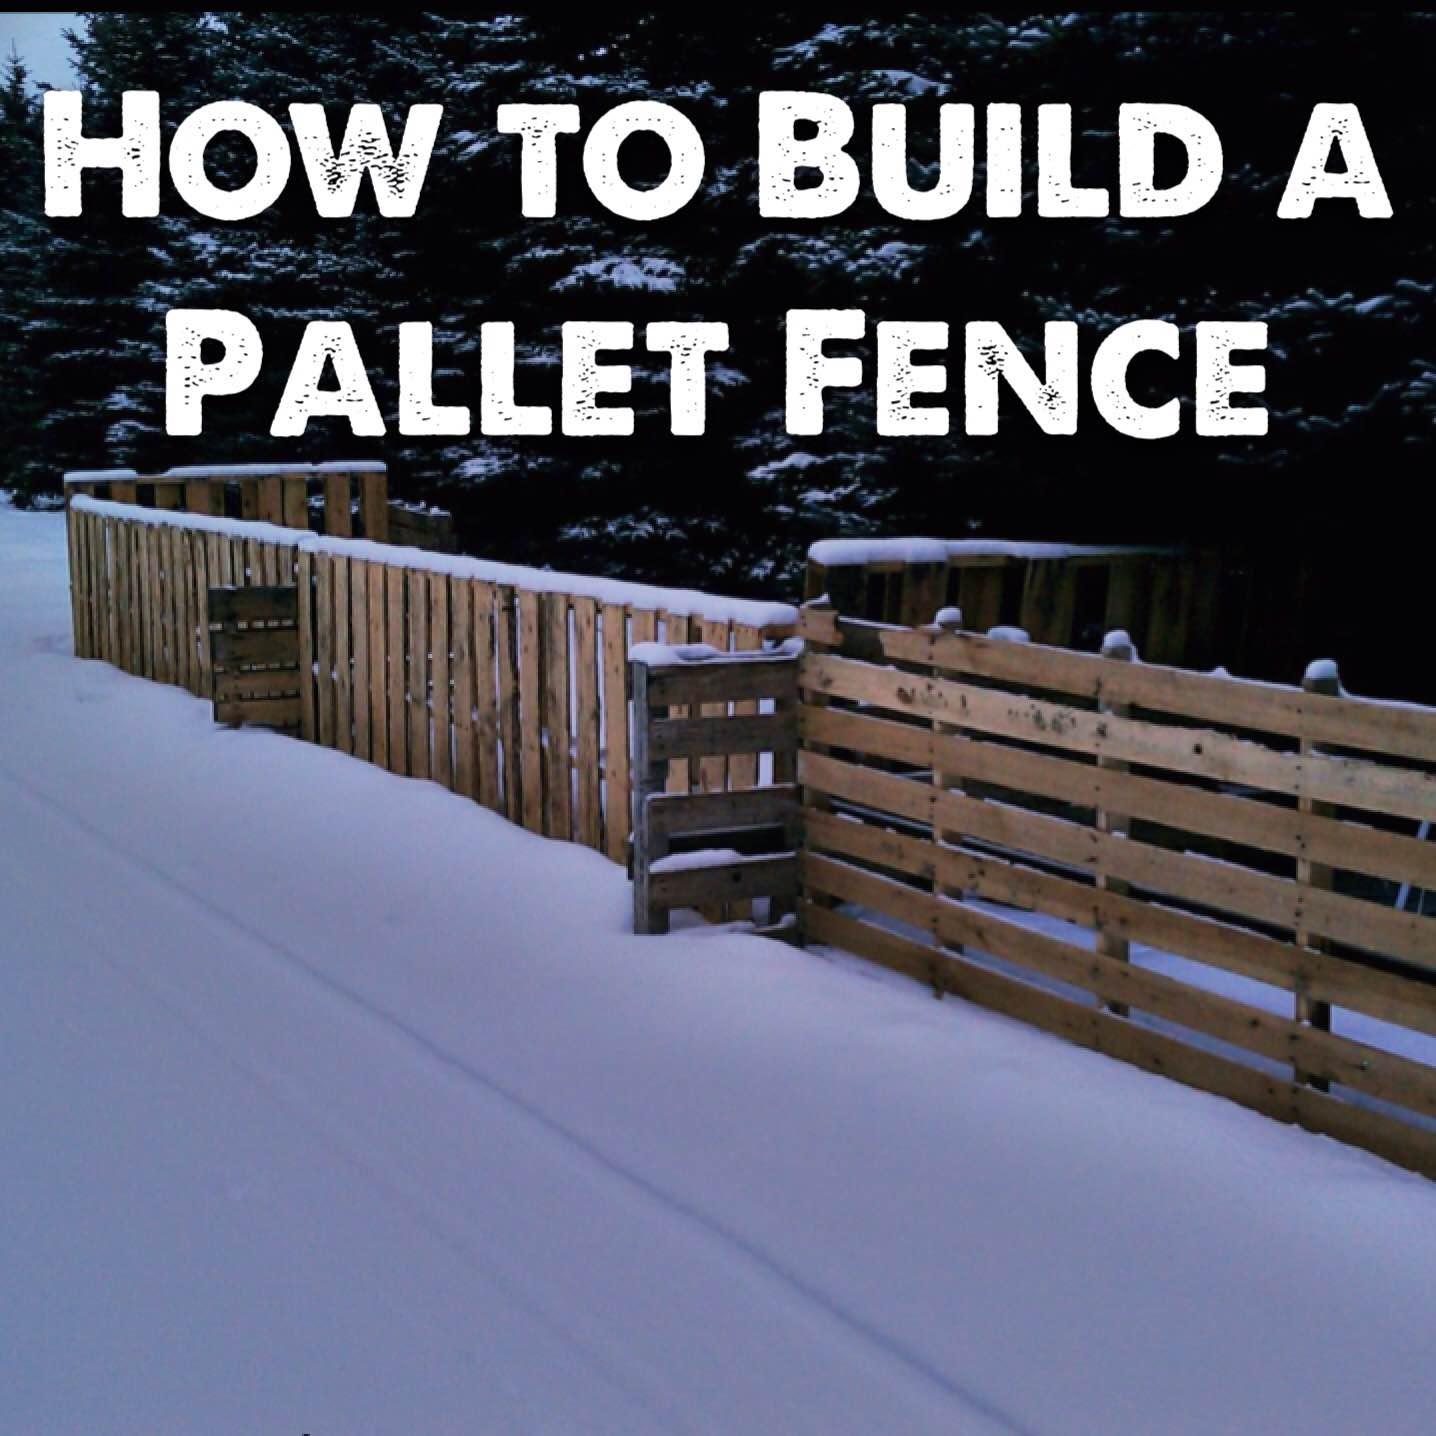 How to Build a Pallet Fence